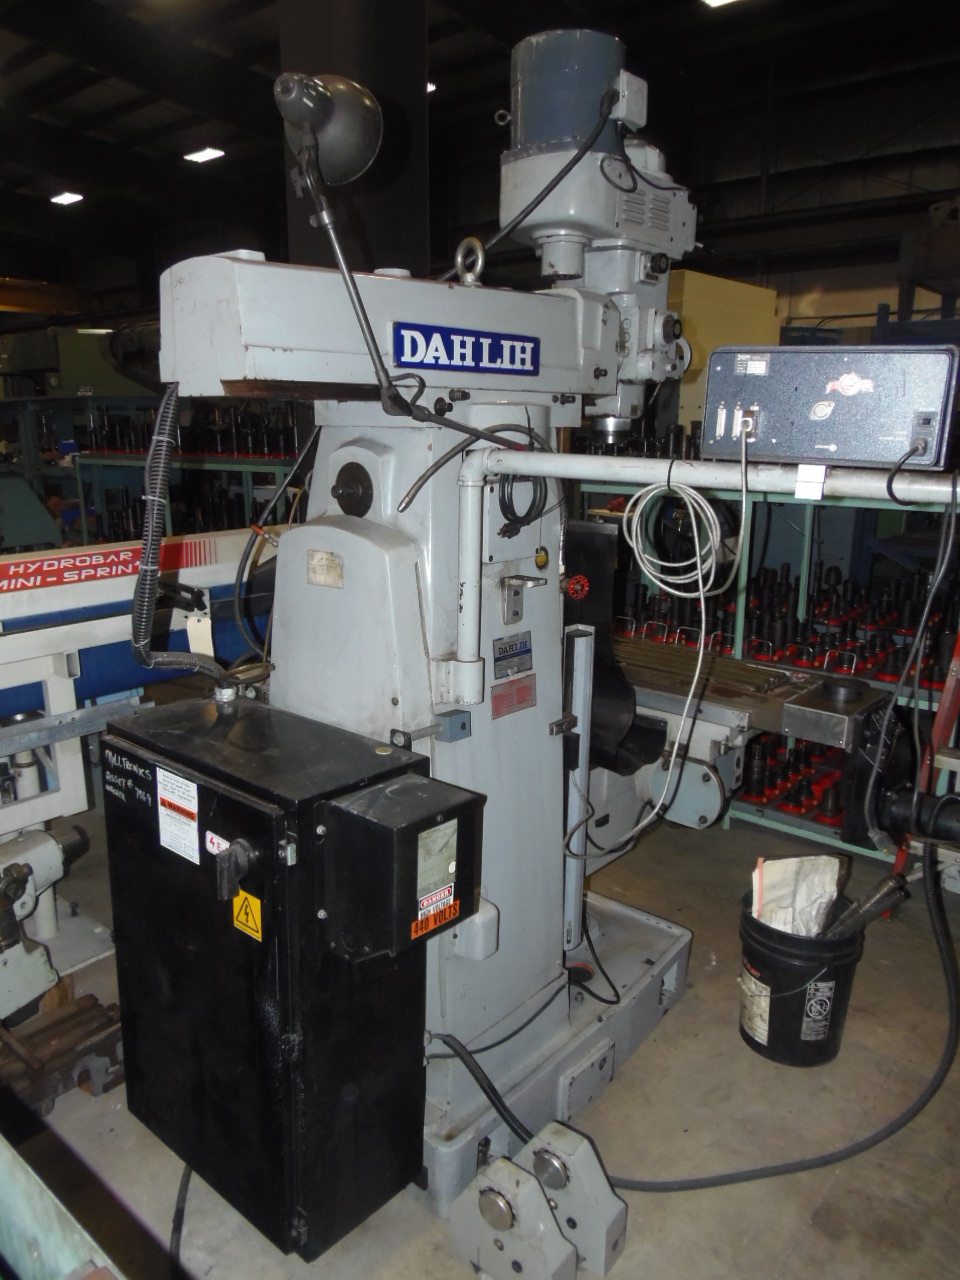 "DAH LIH GH-2200 CNC VERTICAL AND HORIZONTAL MILL, CENTURION 6 CONTROL, HANDLES FOR MANUAL OPERATION, 51"" X 11"" TABLE, 80-3800 RPM, 1989"